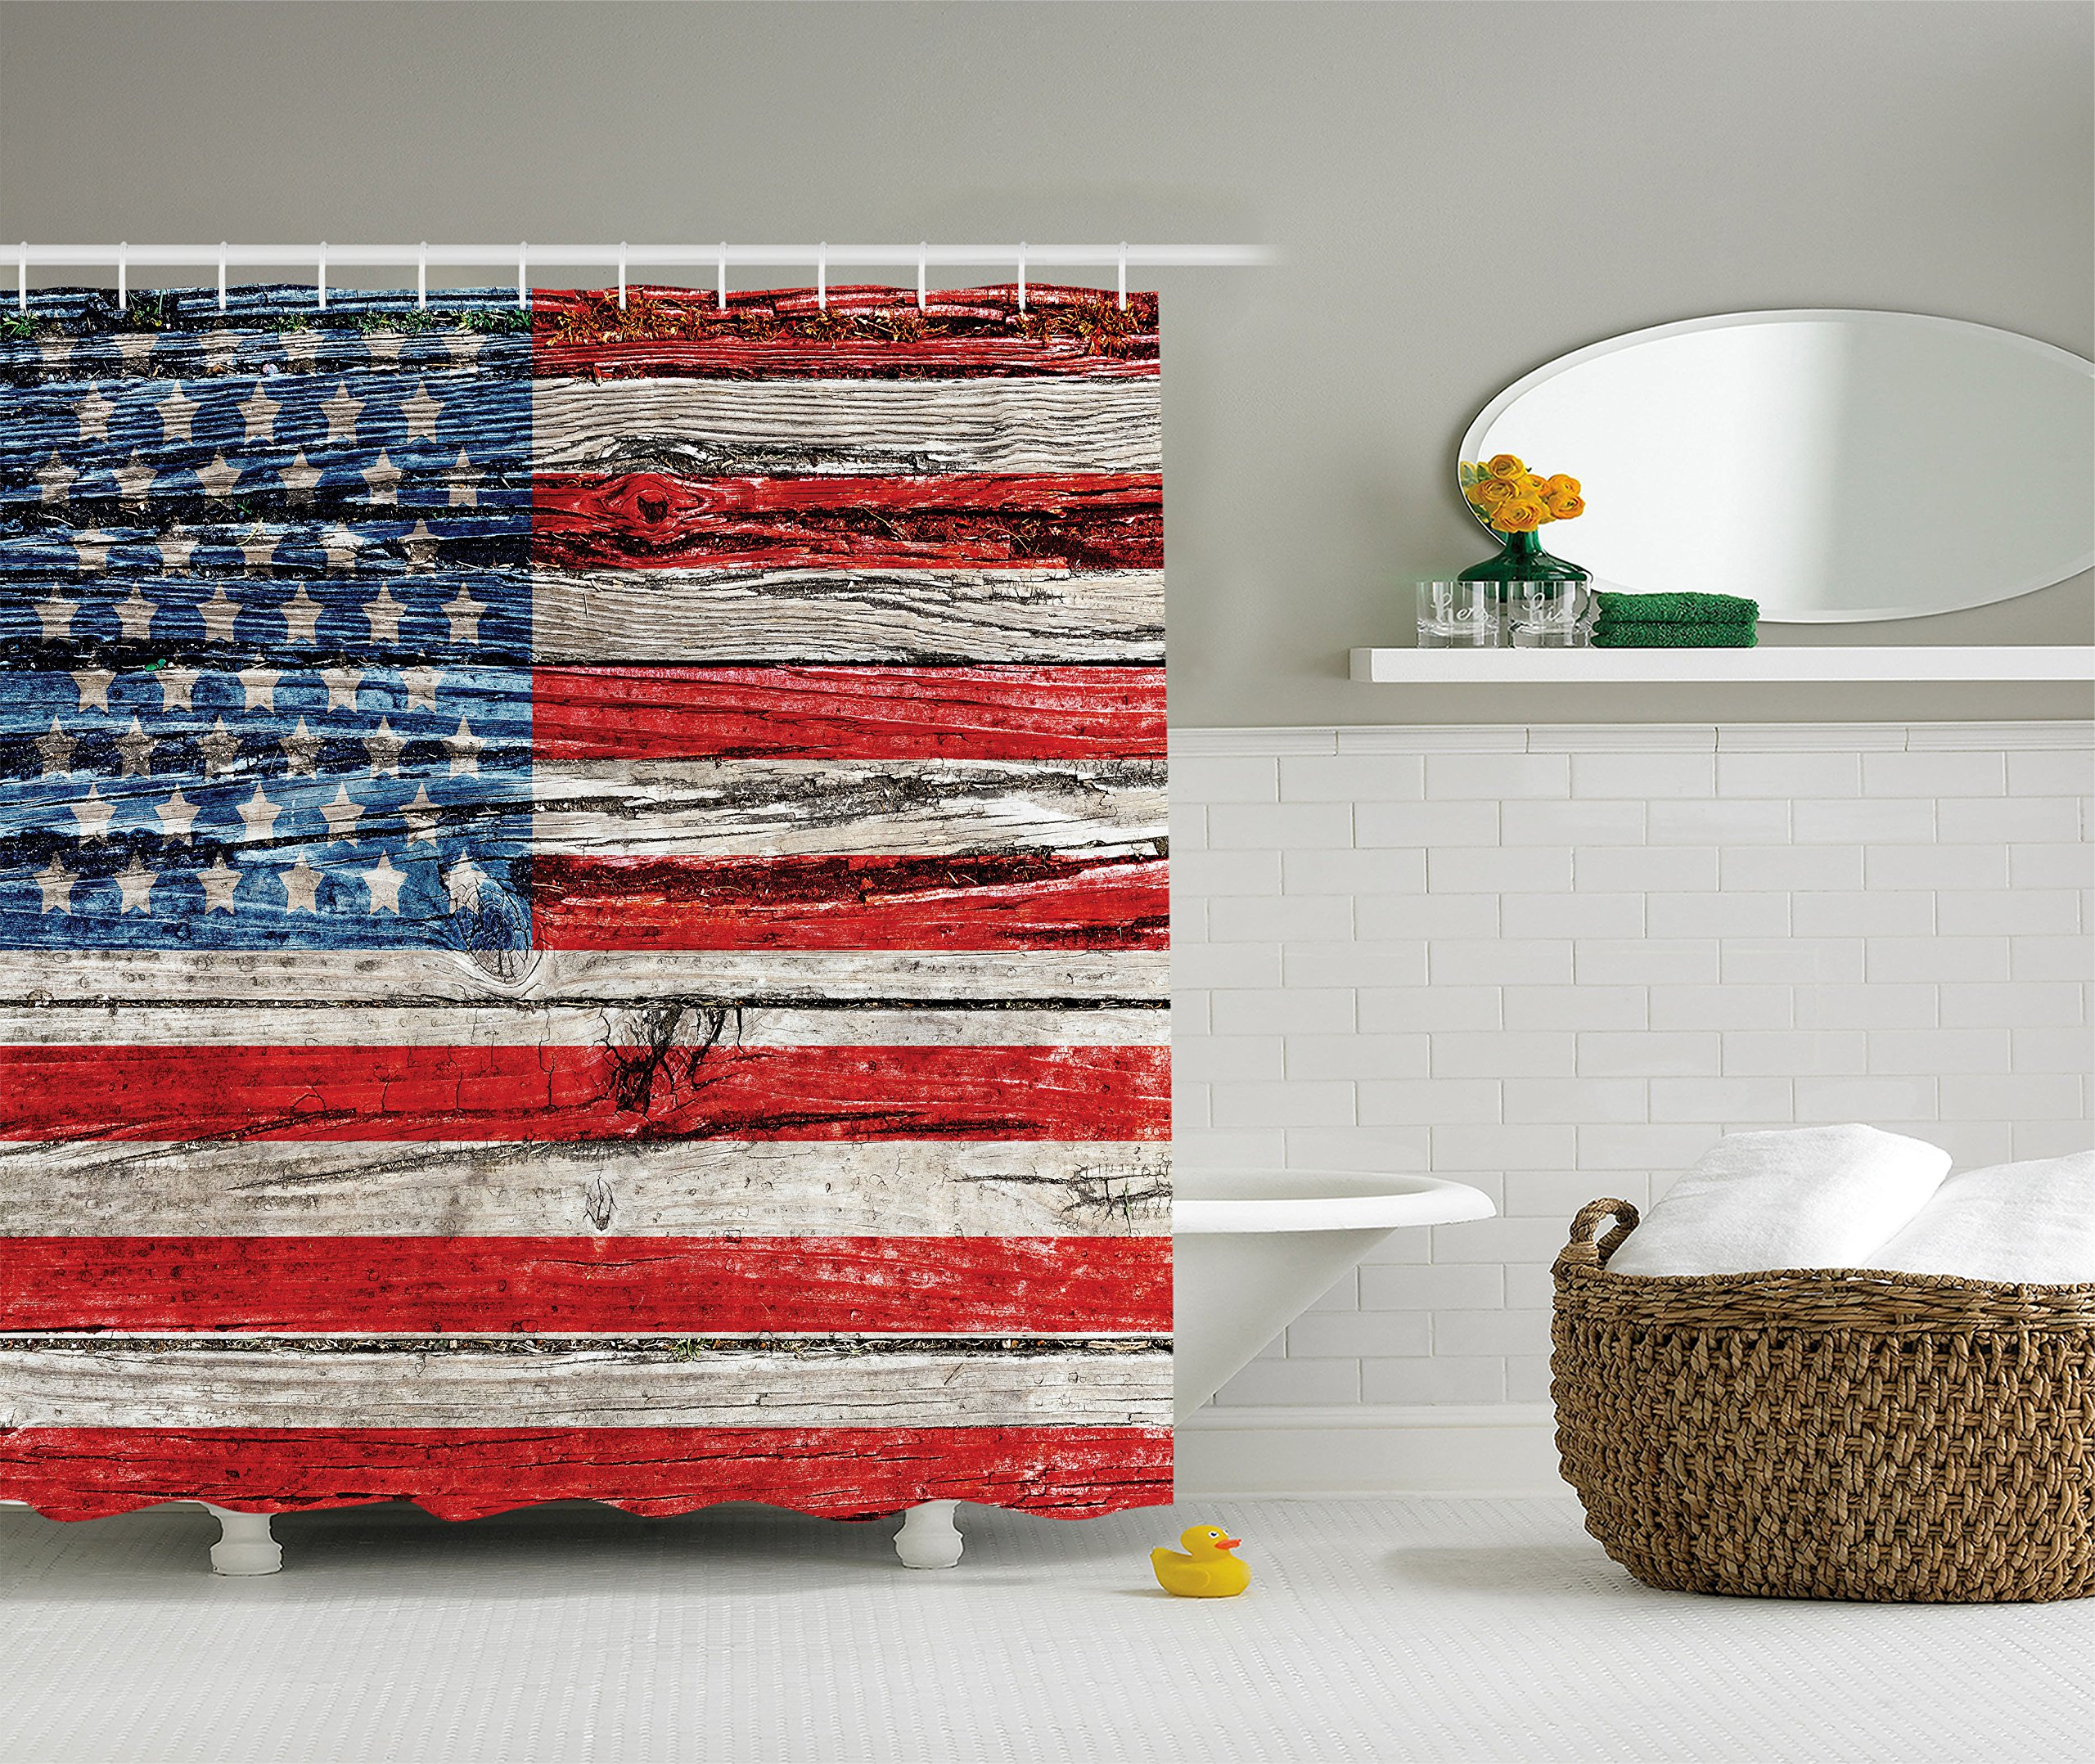 American Flag Shower Curtain USA Decor by Ambesonne, Painted Old Wooden Panel Wall Looking Freedom Symbol Print, Polyester Fabric Bathroom Set with Hooks, 69 x 70 Inches Long, Blue Red